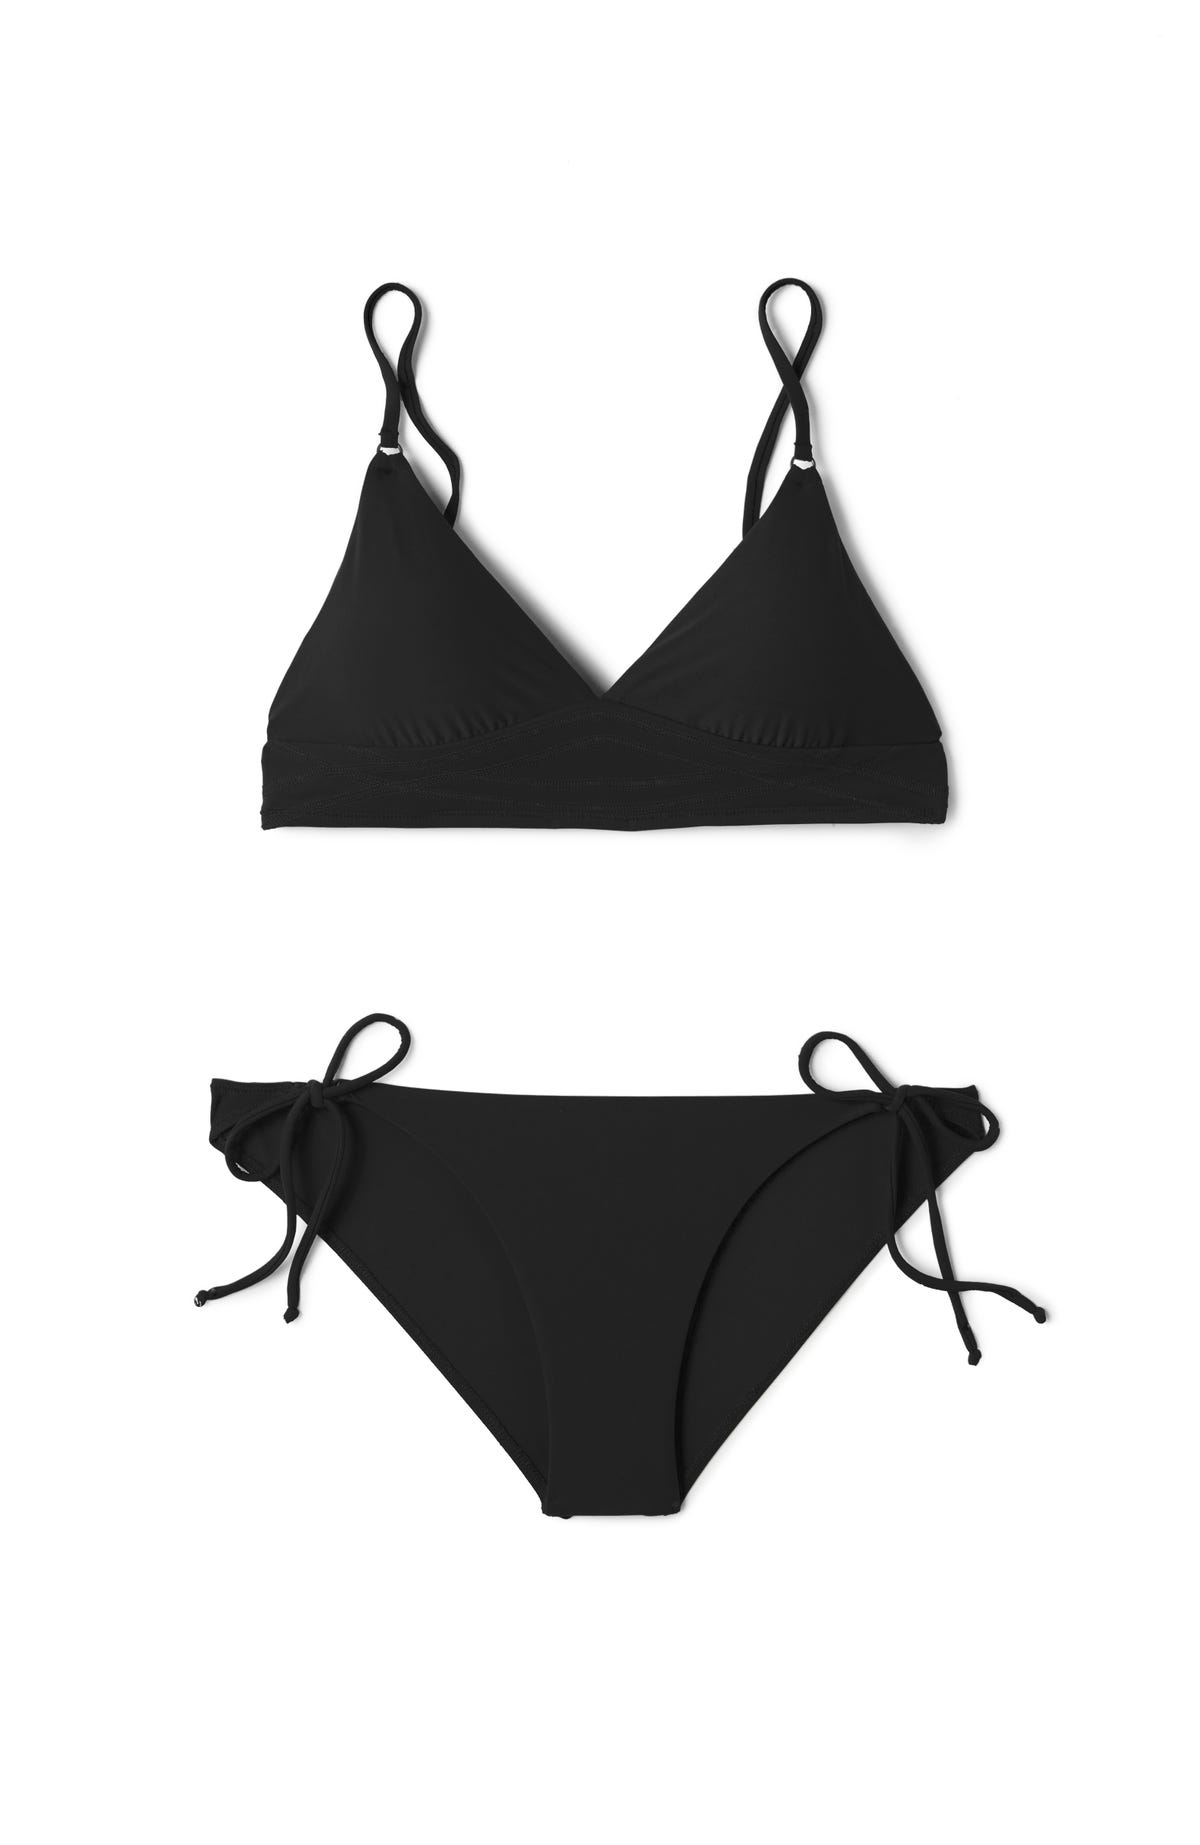 New In Know That To Launched Swimsuit 2018 Brands SMVUpz